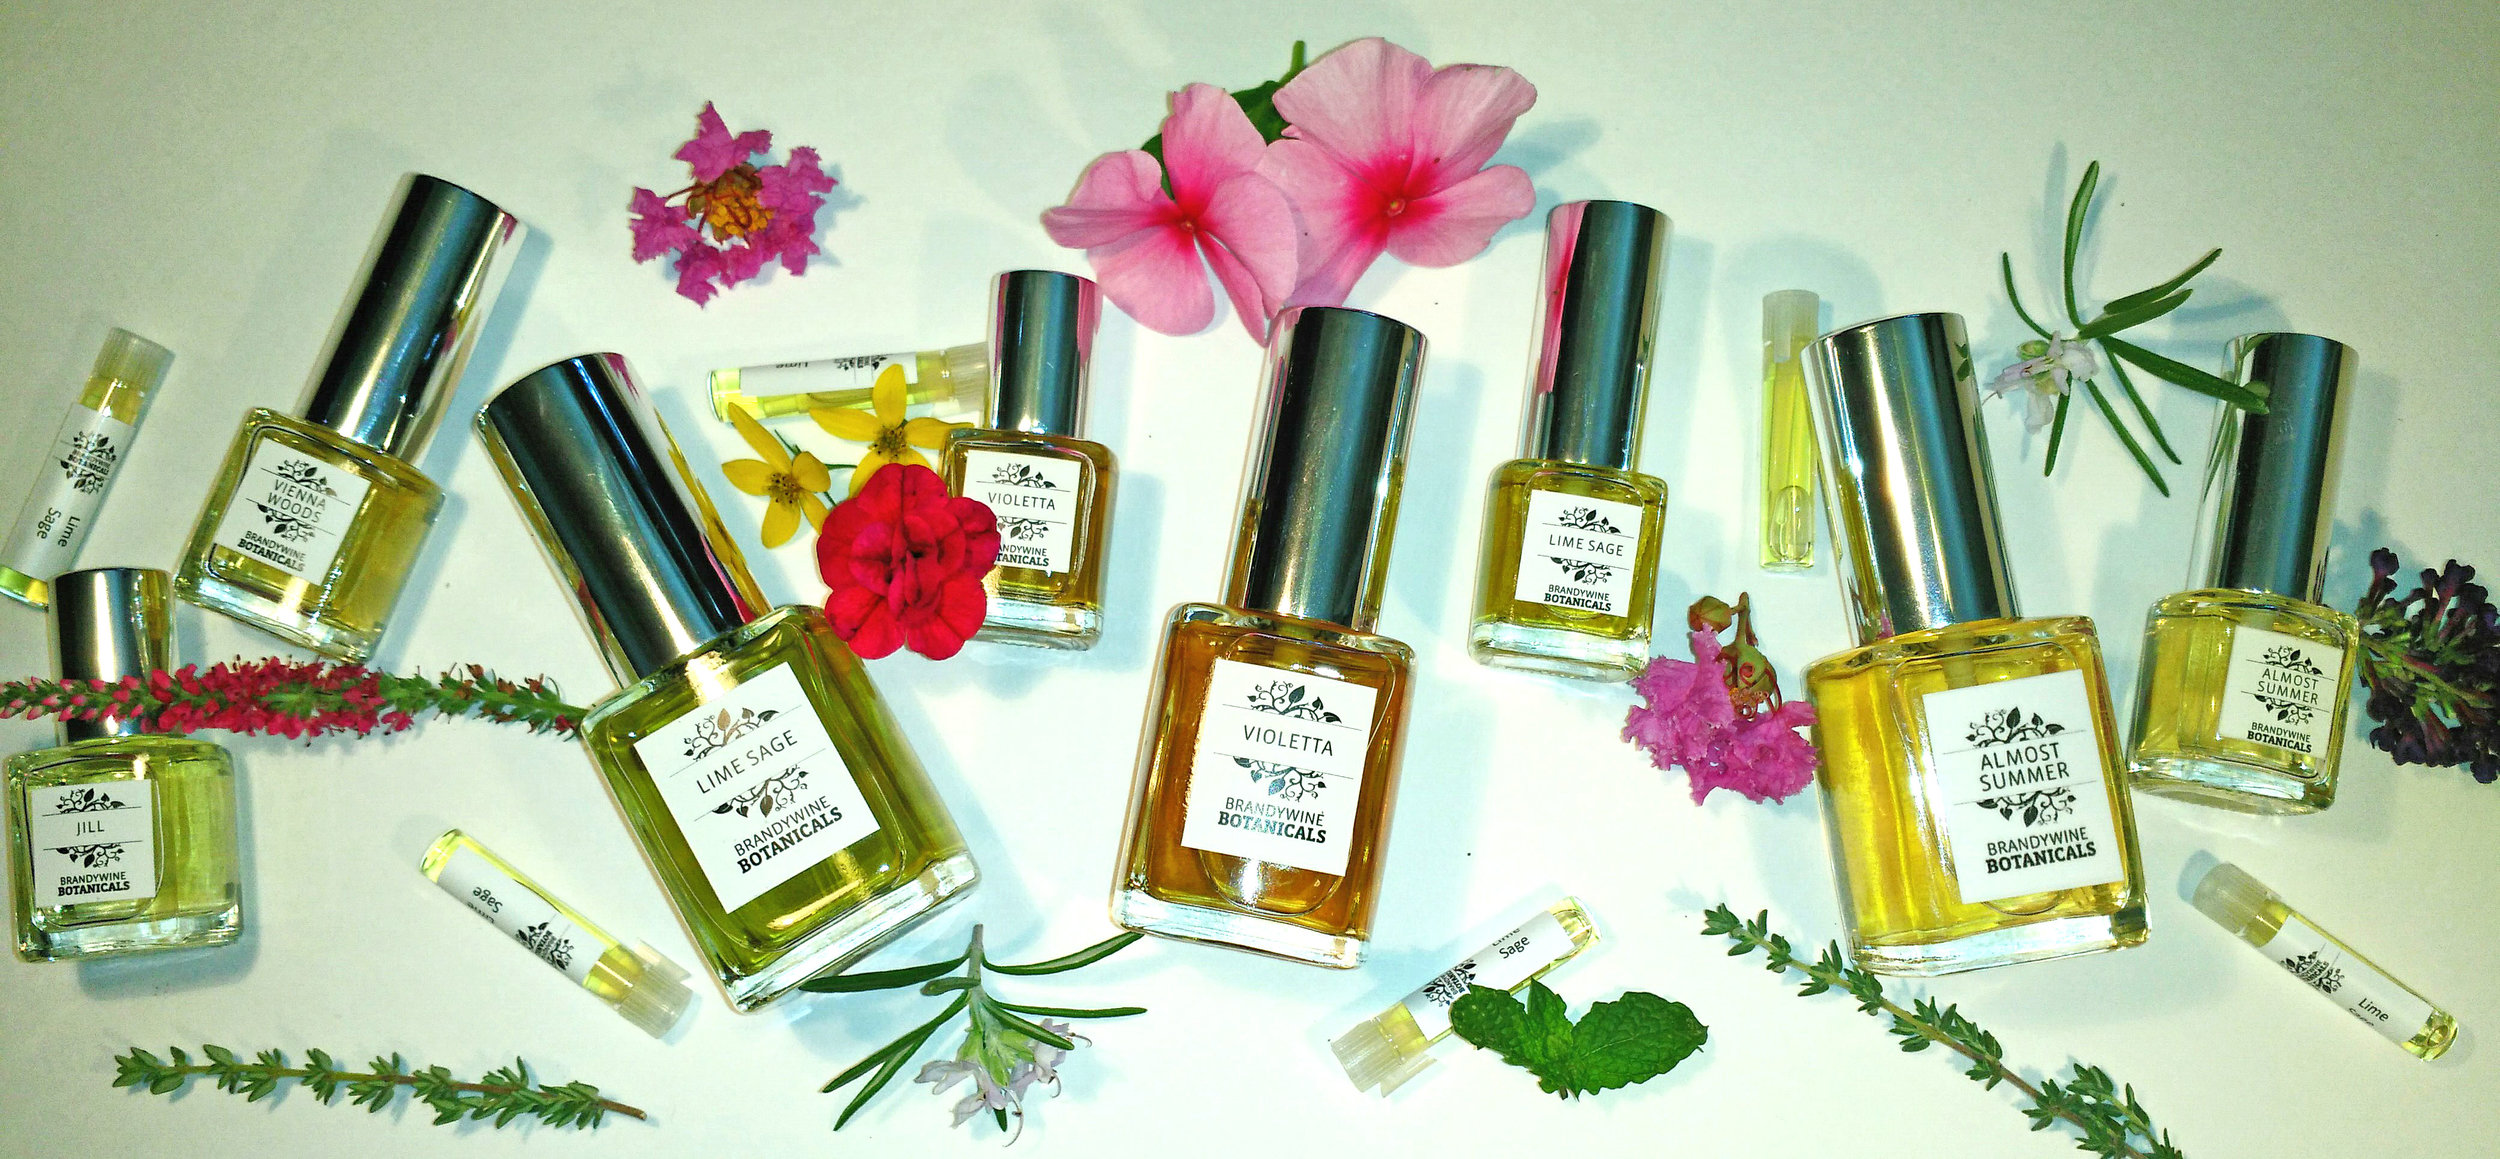 Sadhan K Das Mecca Perfume & Variety Store is classified under health & beauty aid products wholesale and has been in business for 10 or more years.